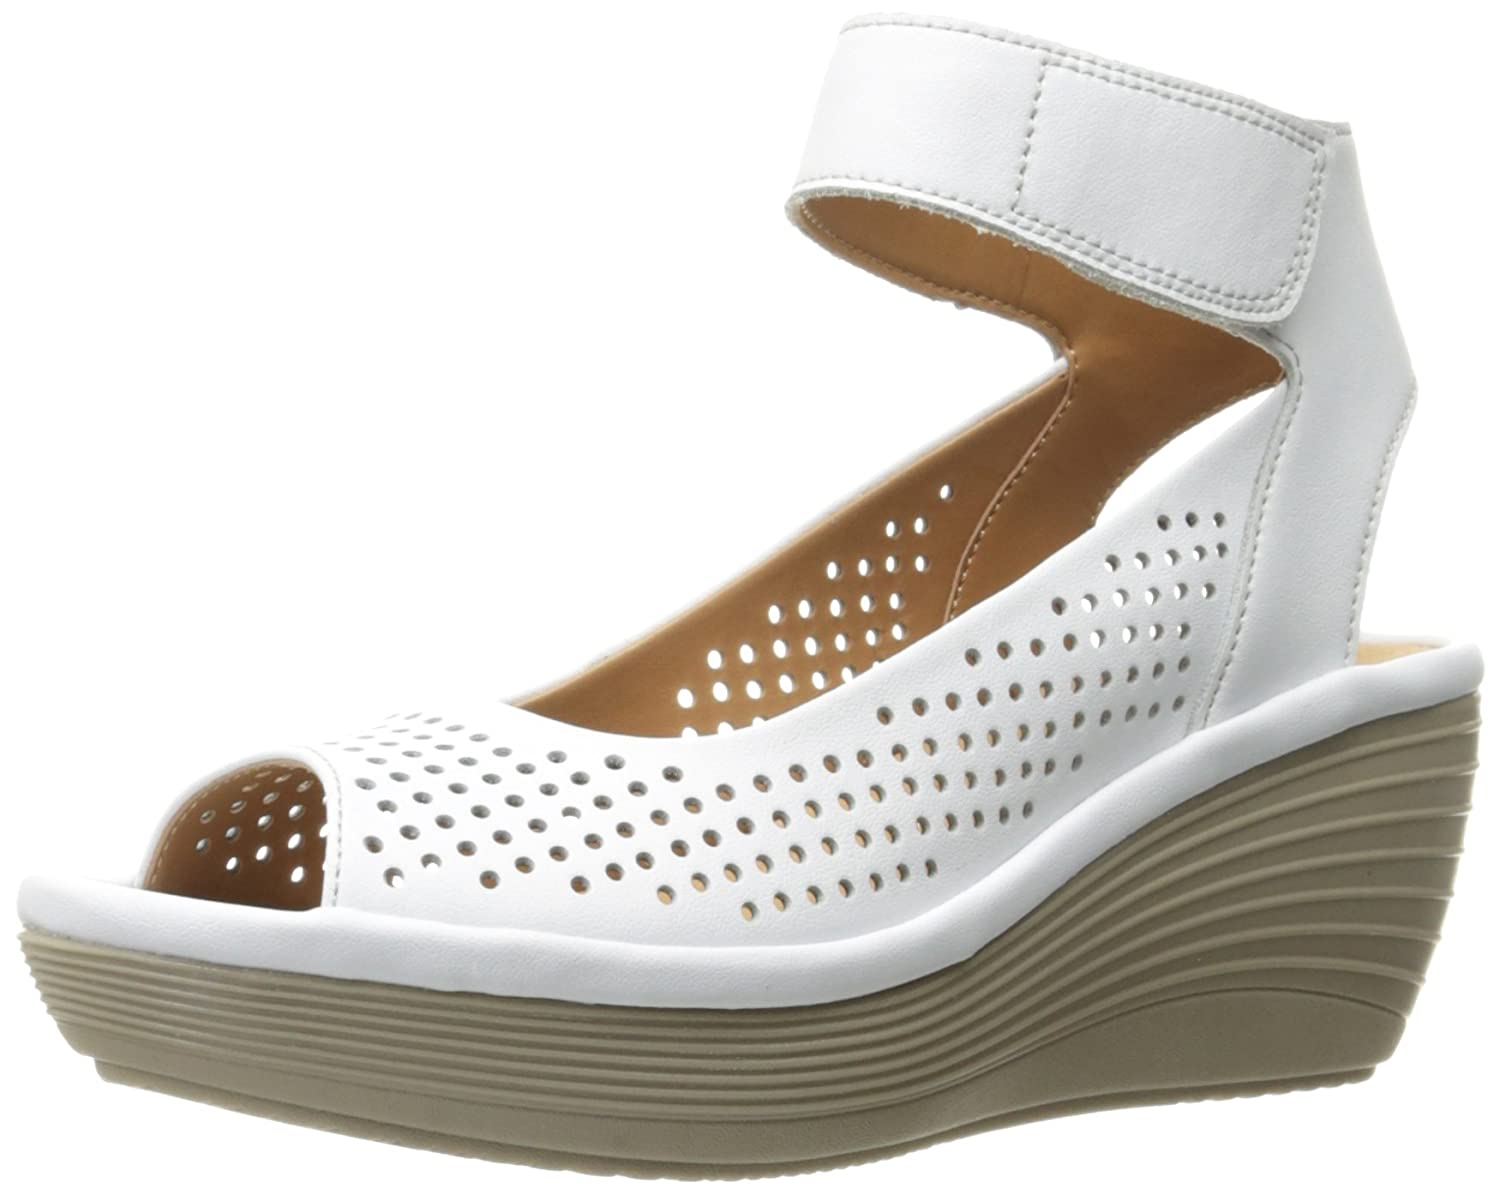 CLARKS Women's Reedly Salene Wedge Sandal B01IAFWTB4 11 W US|White Leather